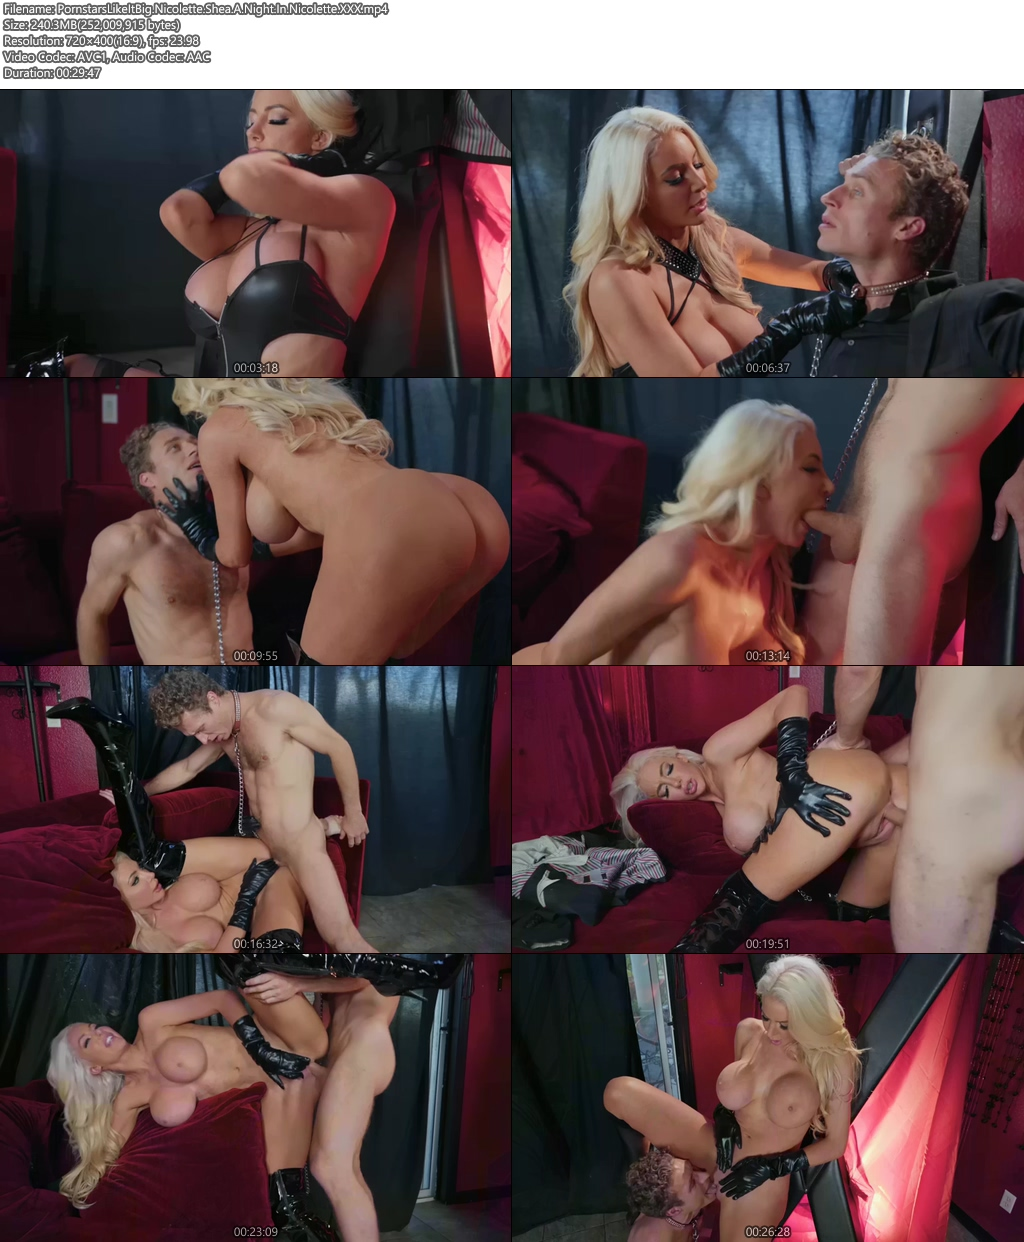 [18+] PornstarsLikeItBig Nicolette Shea Porn Video A Night In Nicolette XXX Screenshot